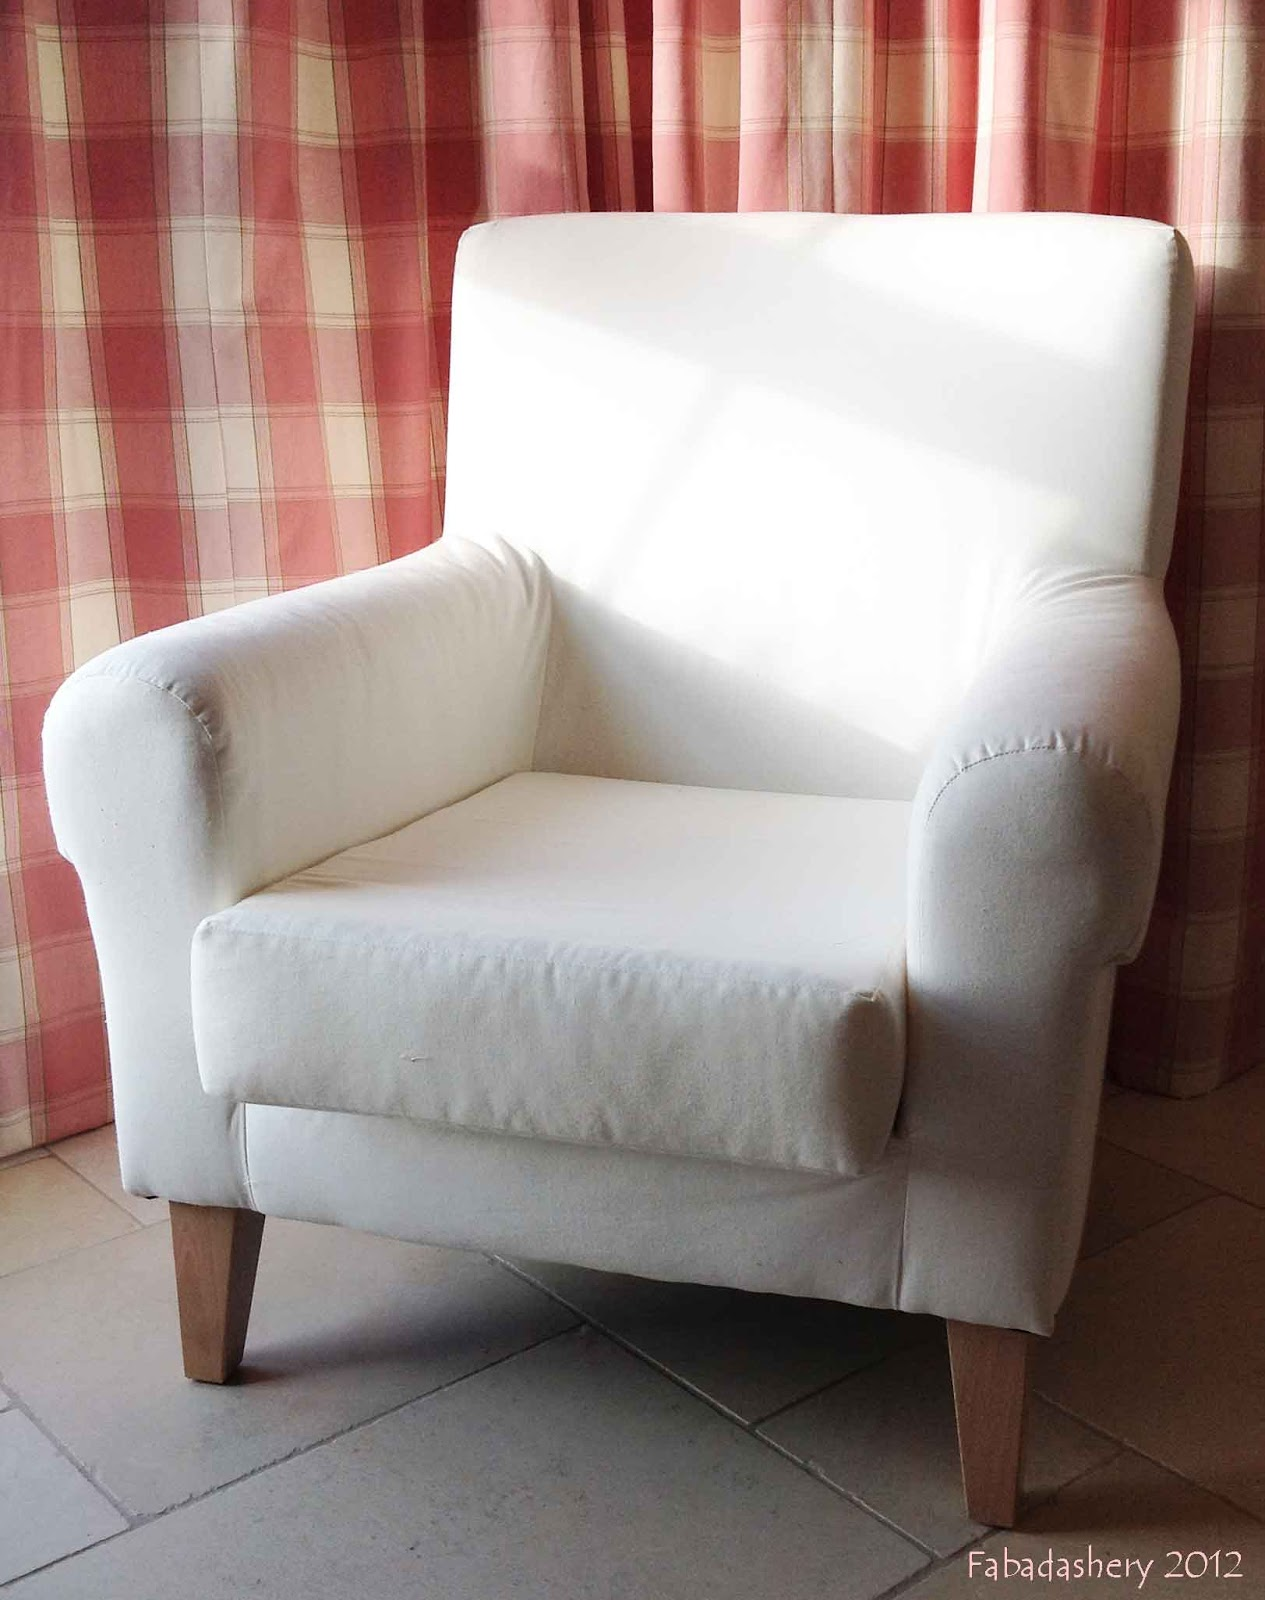 Tullsta Chair Cover Fabadashery: Couture For Ikea, With Bemz